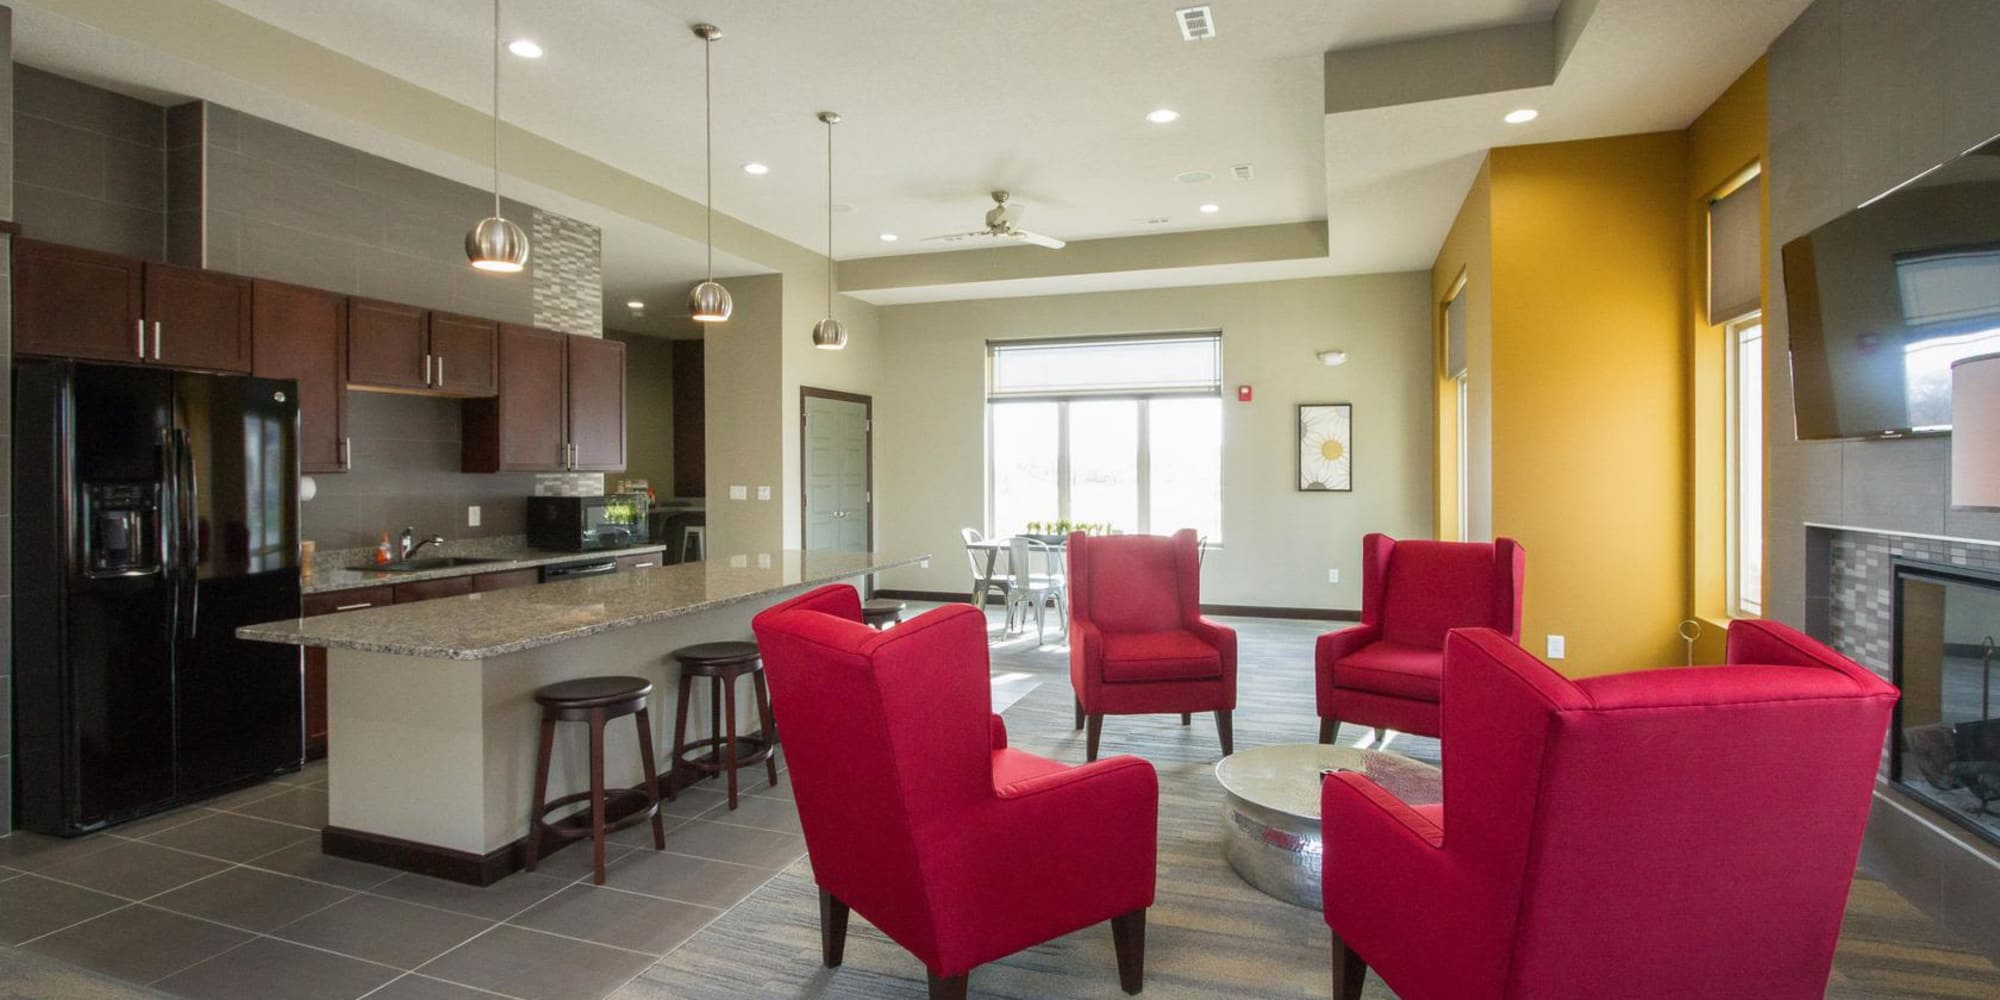 Apartments in West Des Moines, Iowa at The Cascades at Jordan Creek